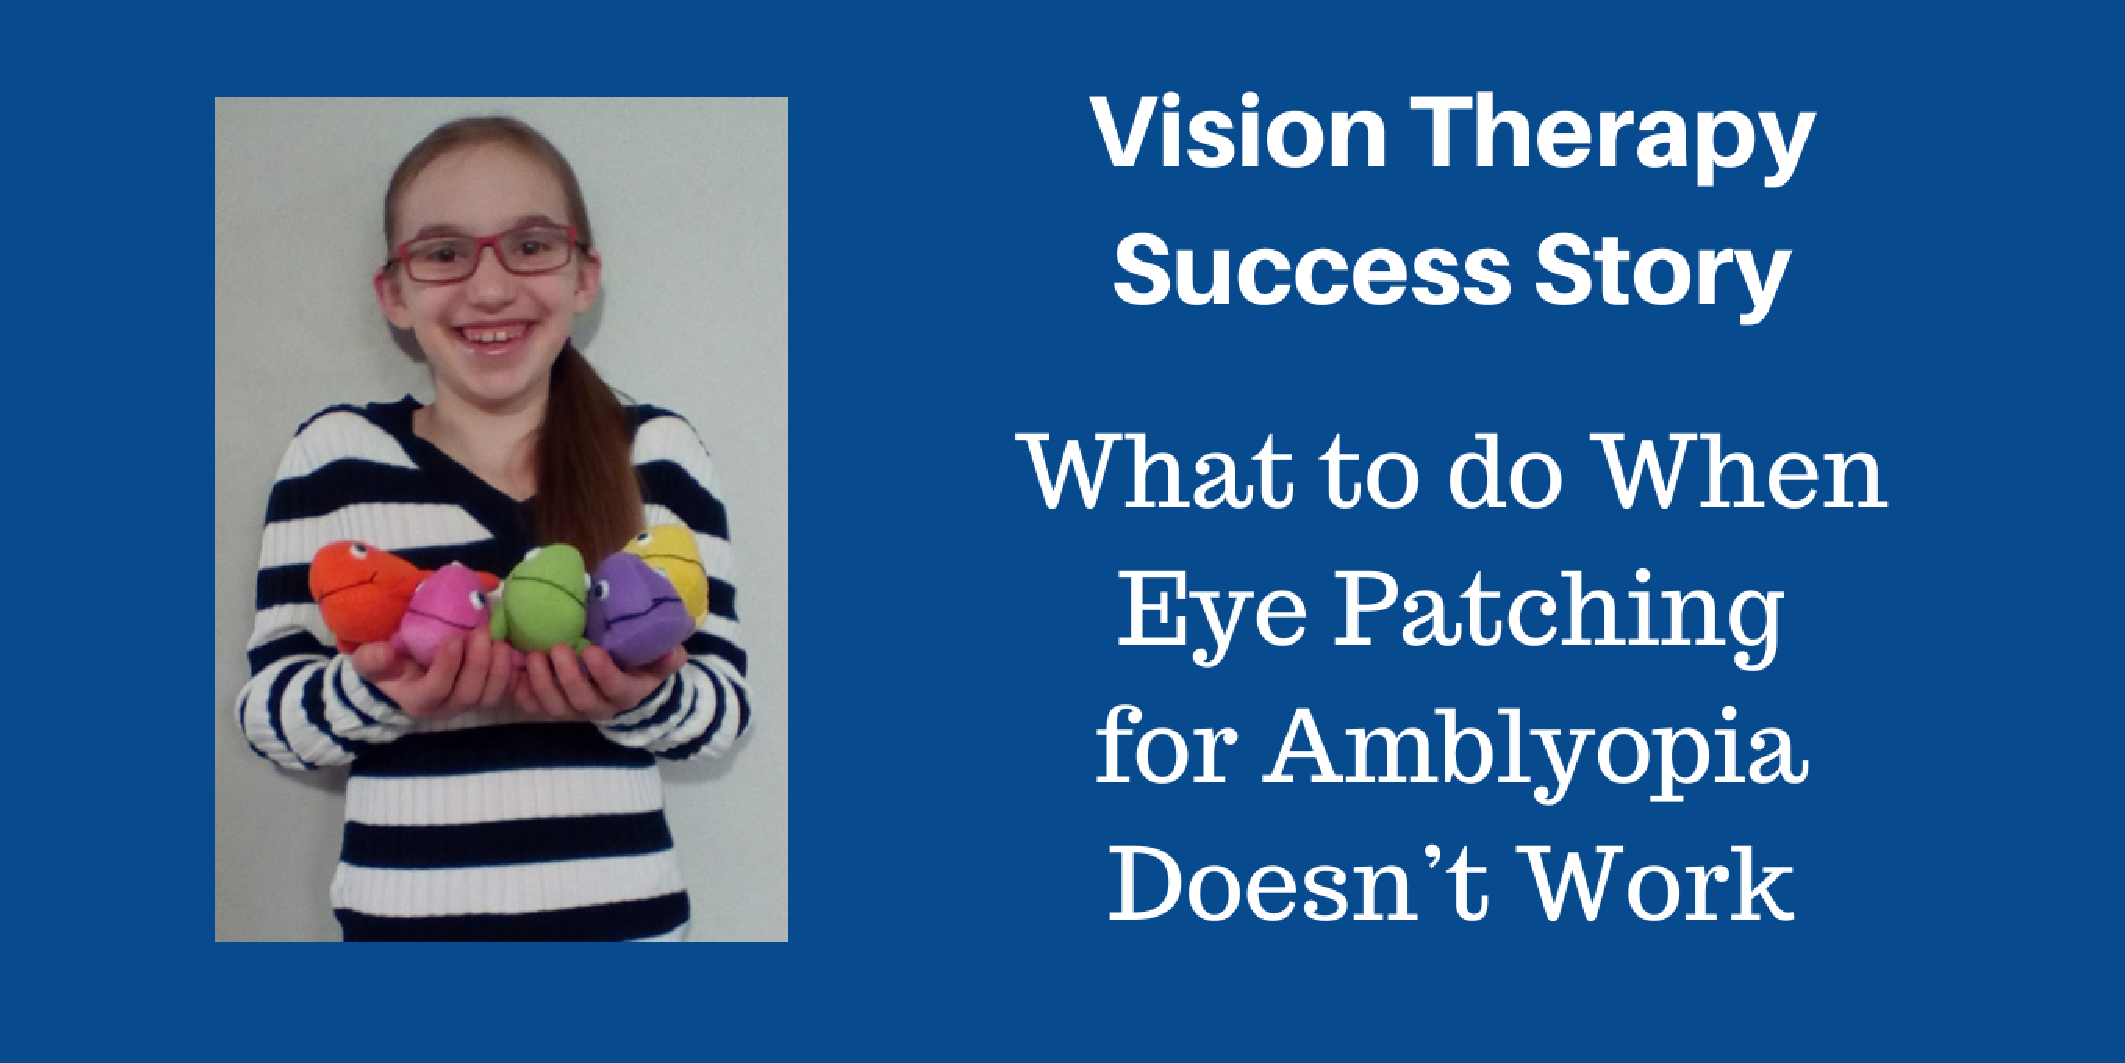 Eye patching for amblyopia didn't work.